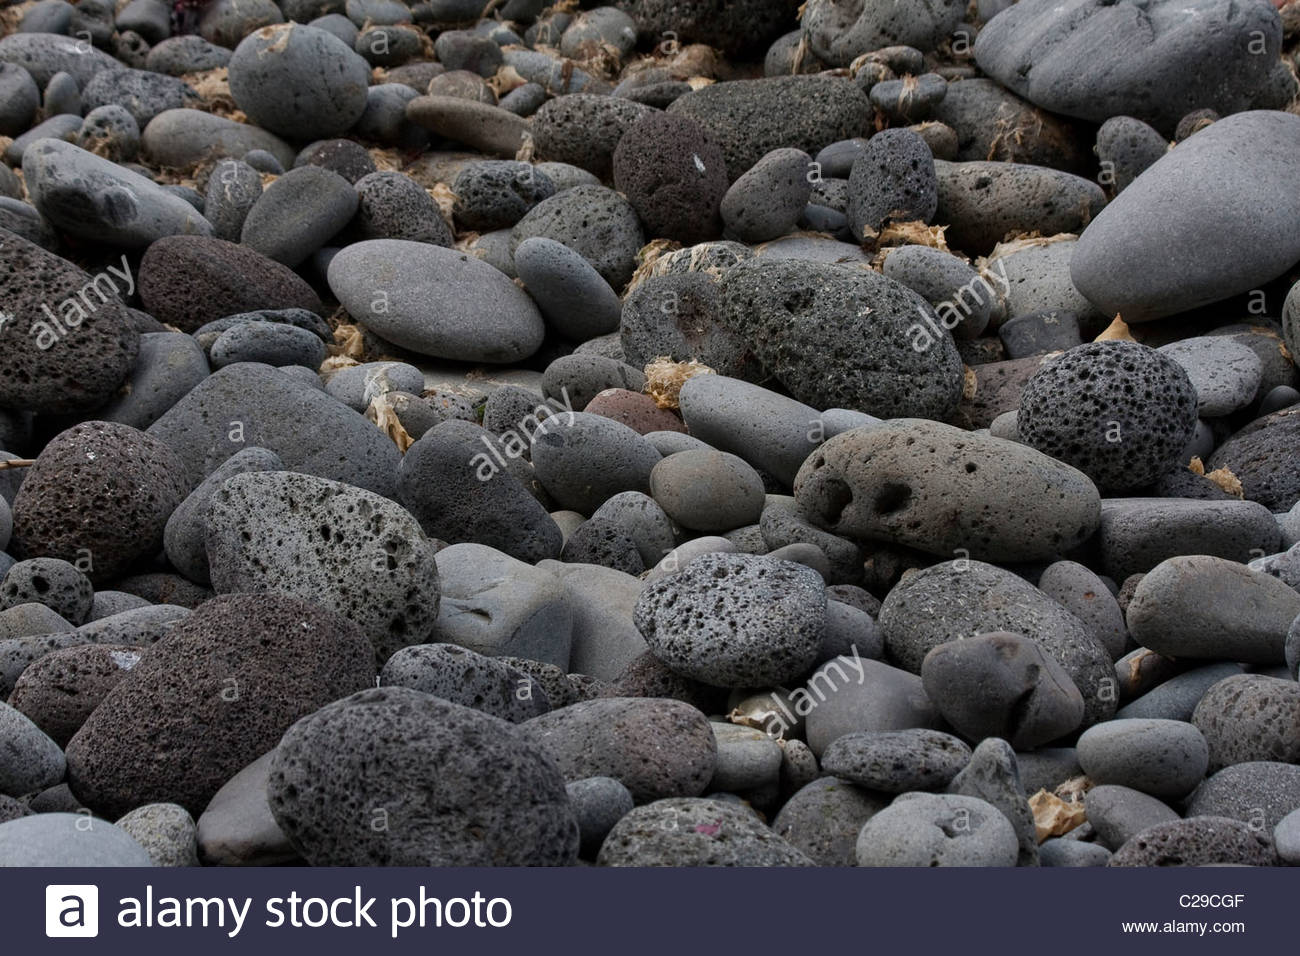 Volcanic rocks on the shore of Inaccessible Island. - Stock Image